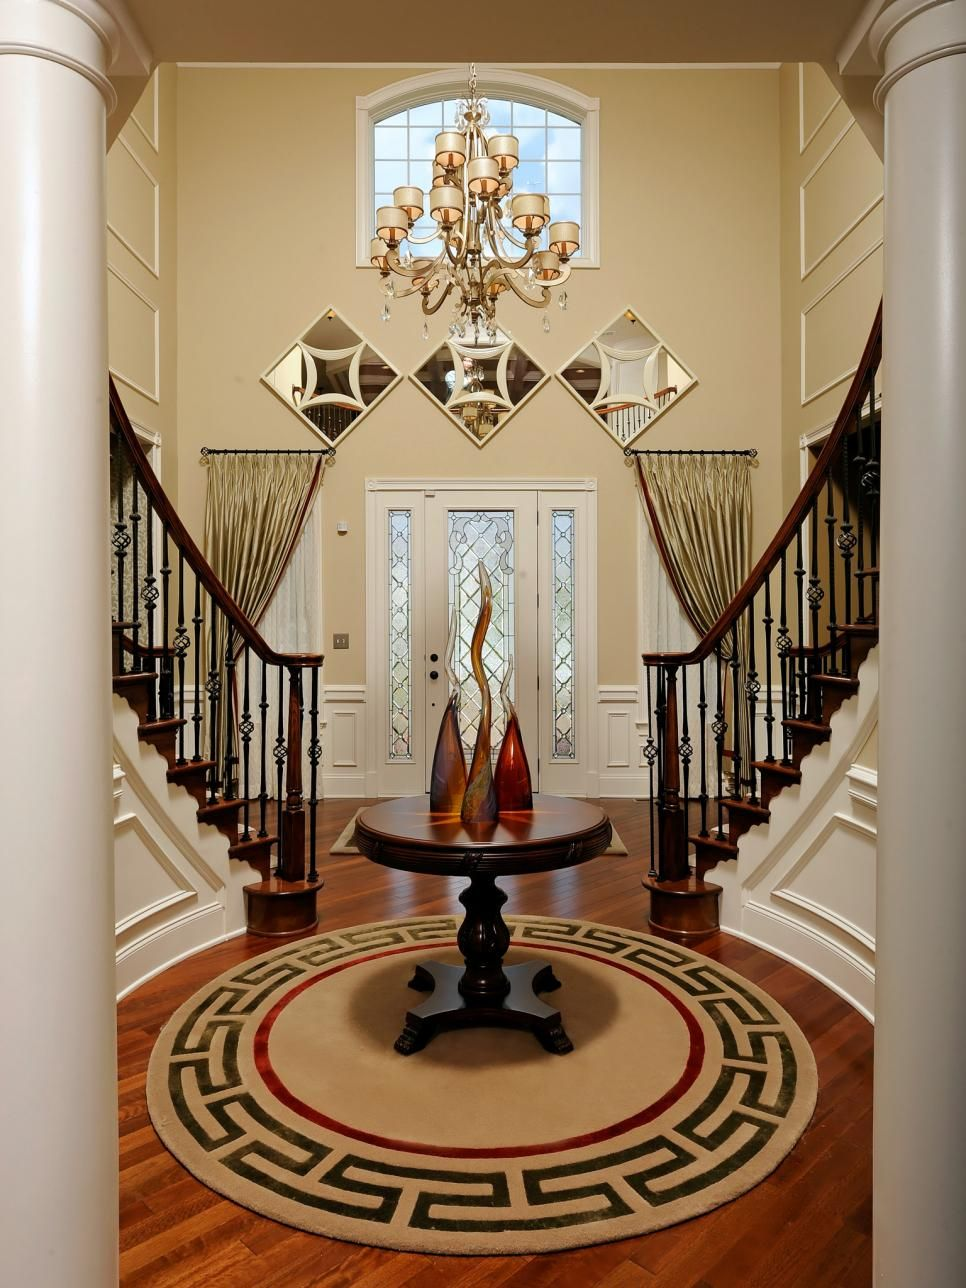 2 Story Foyer Decorating Ideas a gallery of beautiful iris images | staircases